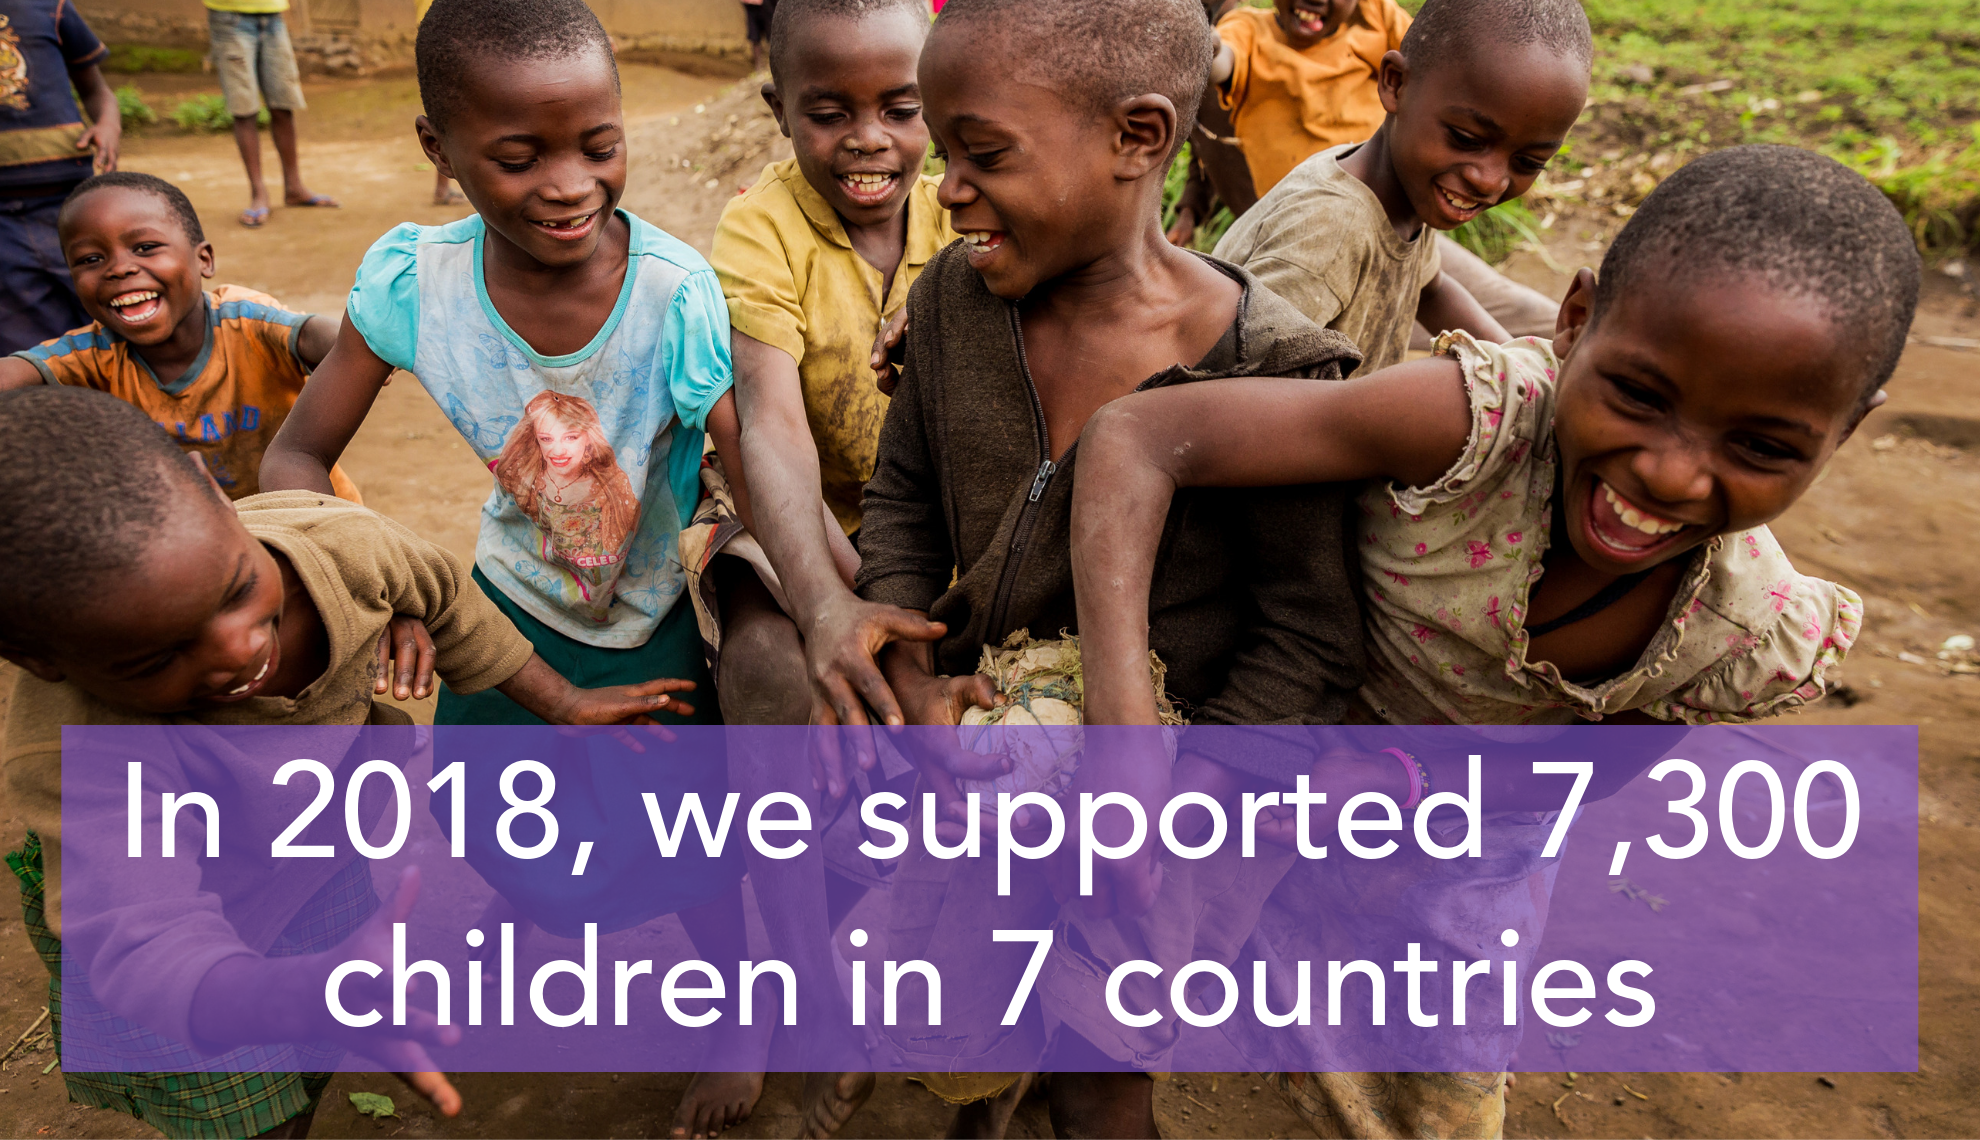 In 2018 we supported 7,300 children in 7 countries